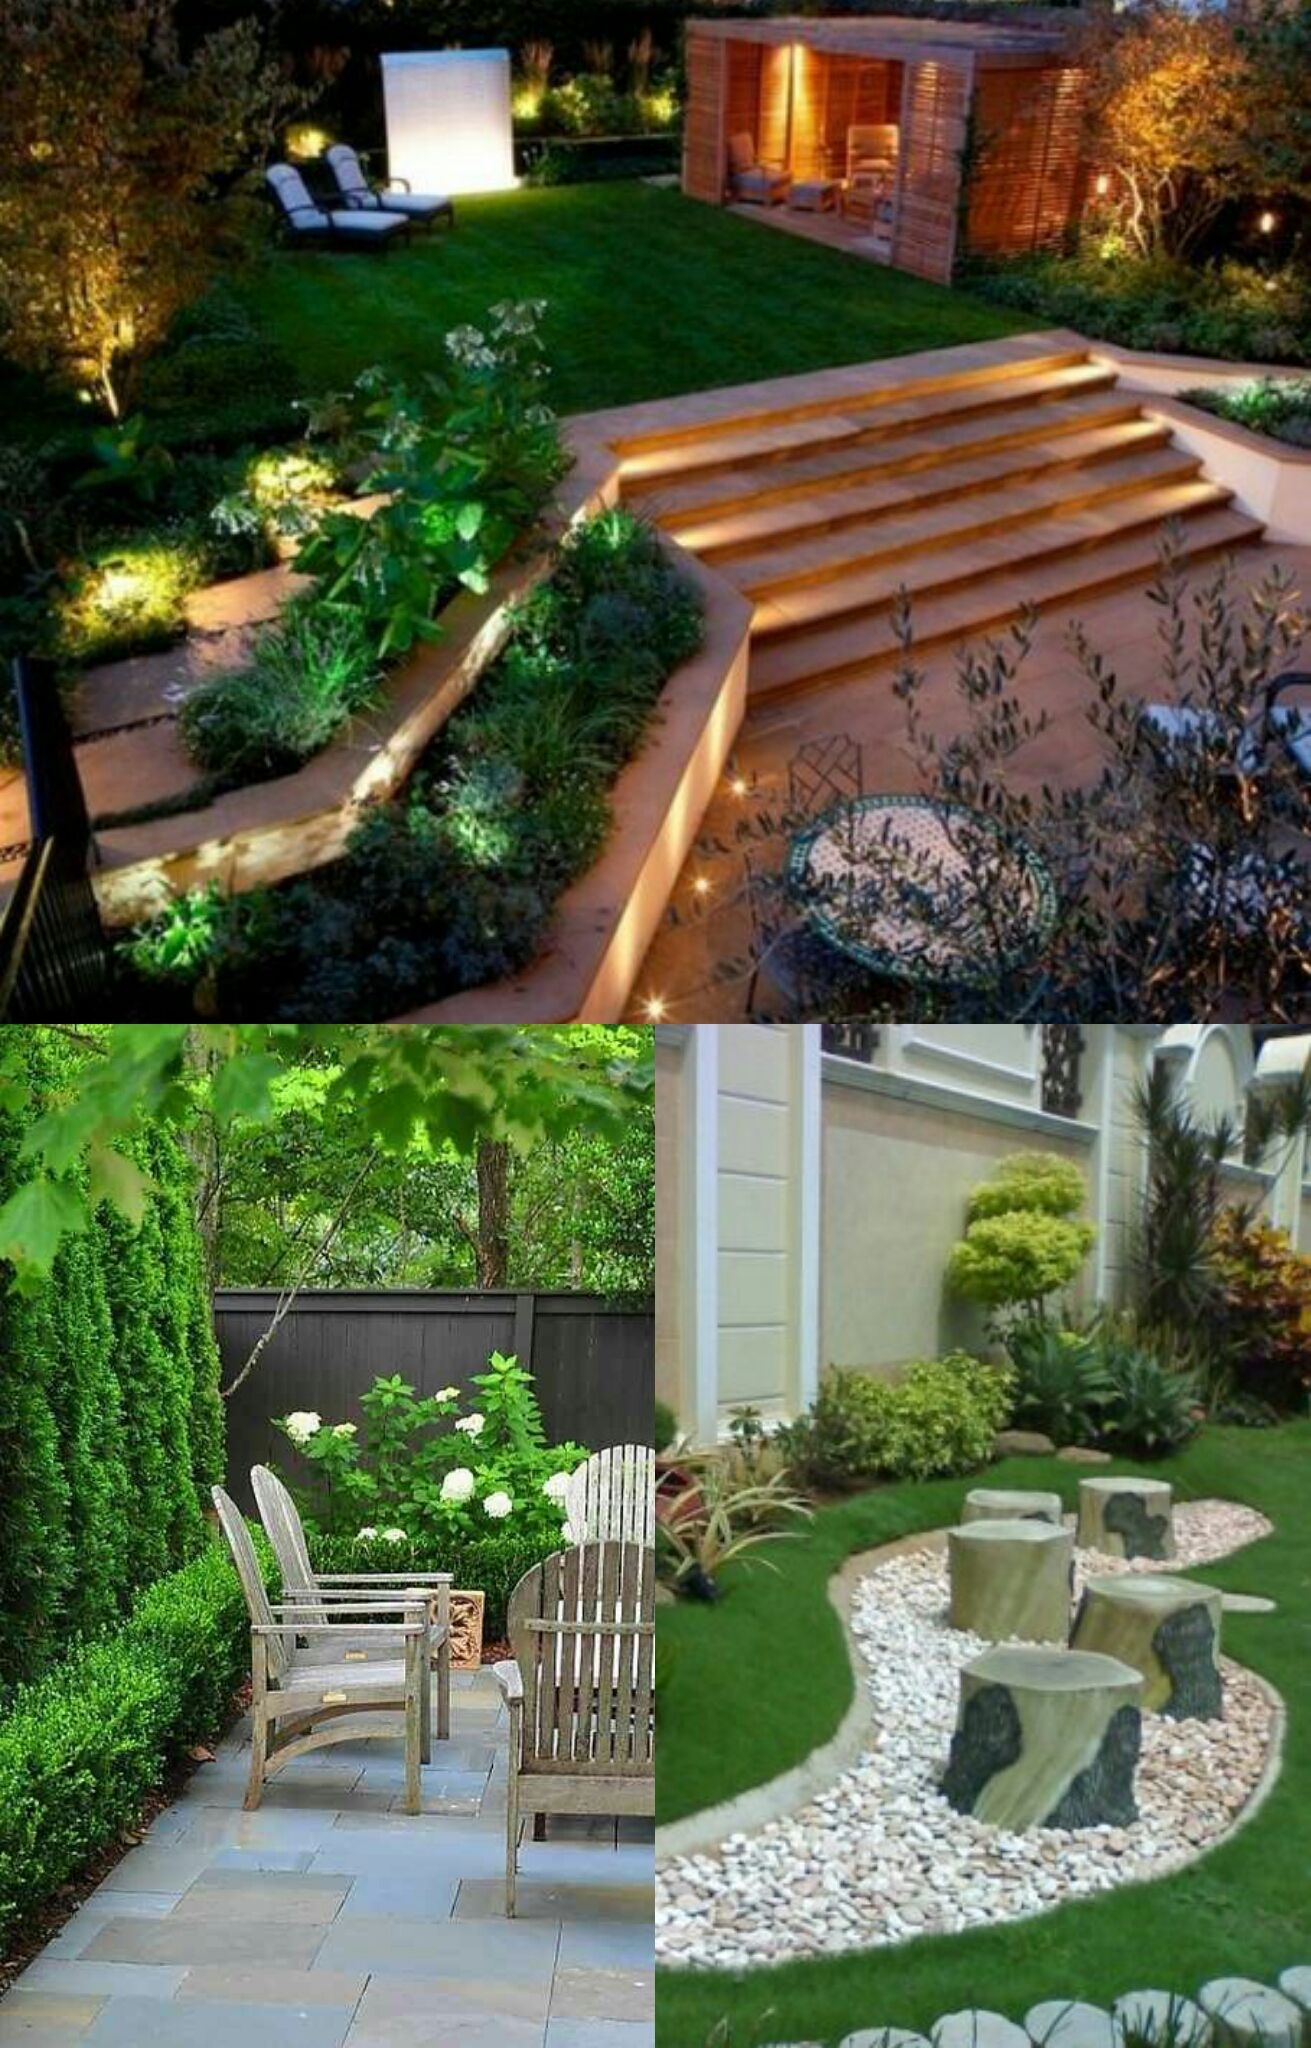 Some Examples of Landscaping Ideas That Can Be Applied on ... on narrow garden design with stone, best garden ideas, painted flower pot ideas, japanese garden ideas, narrow patio ideas, unique garden fountain ideas, road design ideas, container flower pot arrangement ideas, small water garden fountain ideas, front yard landscape design ideas, narrow gardening ideas, small narrow backyard ideas, narrow family room designs, long narrow garden ideas, narrow decorating ideas, small rose garden layout ideas, side yard landscaping ideas, narrow landscape ideas, japanese modern landscape design ideas, small outdoor spaces design ideas,